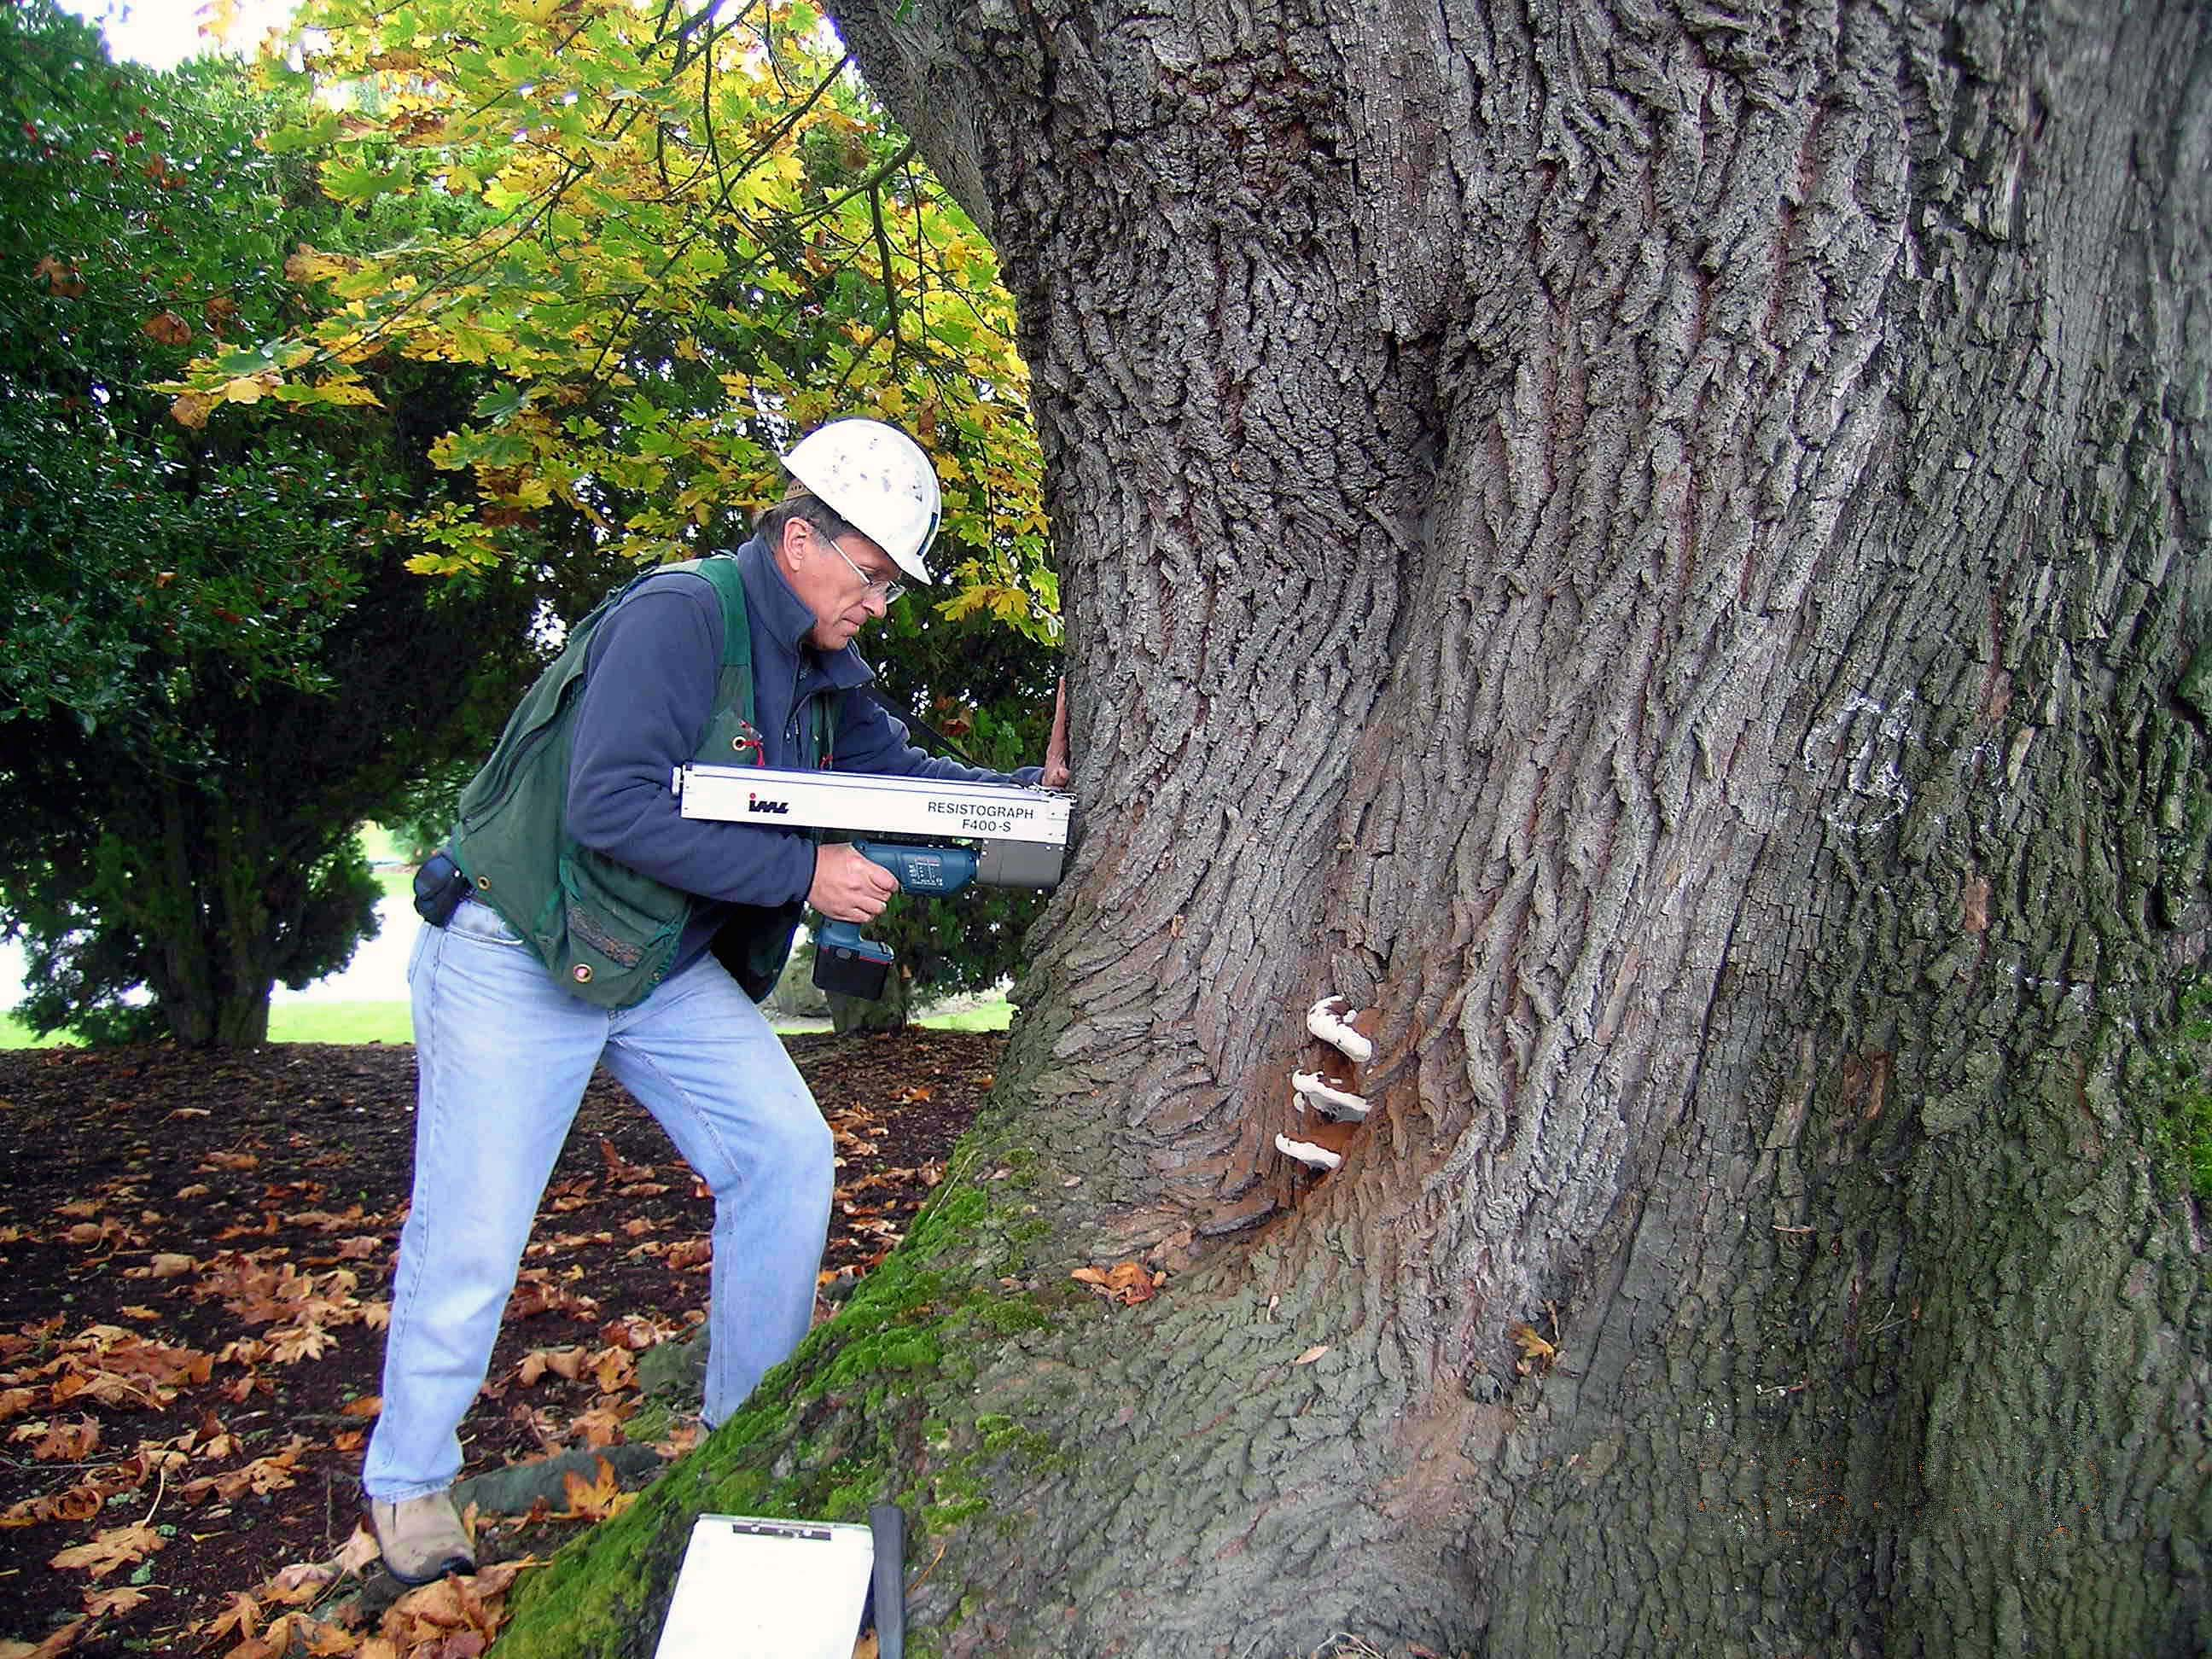 Jim Working with the Resistograph - Urban Forestry Services, Inc.